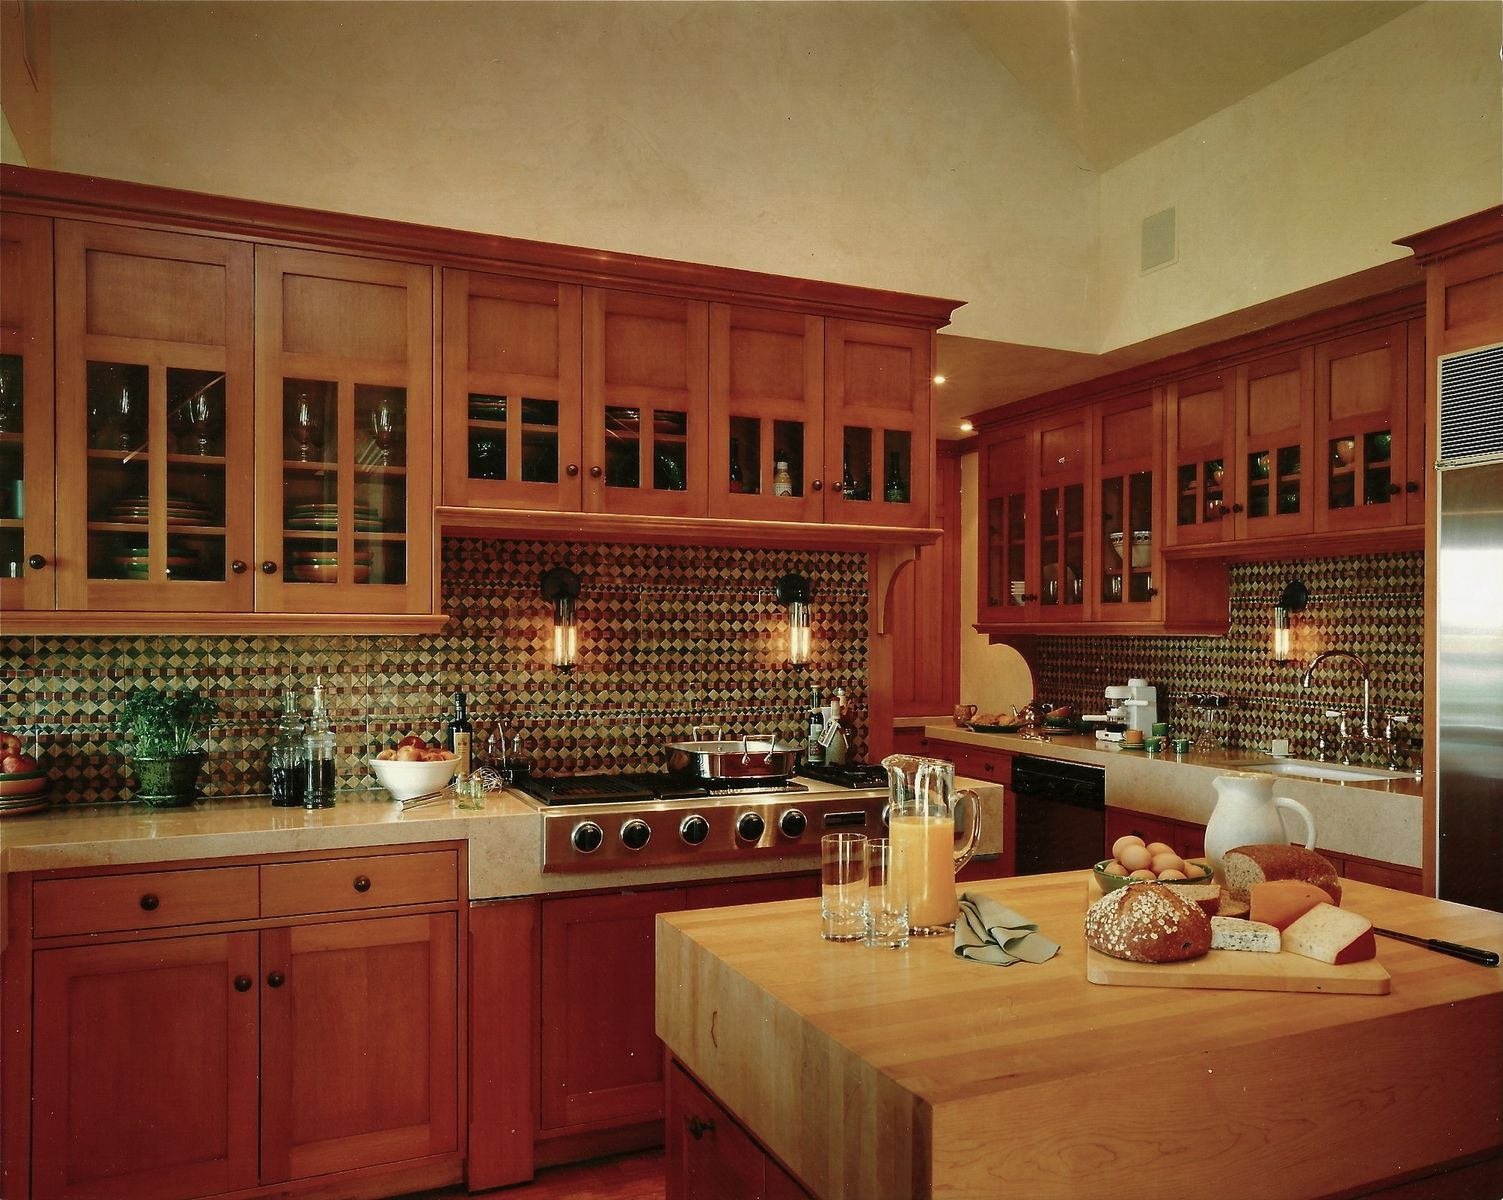 Custom An Arts And Crafts Kitchen By Steepleview Cabinetry